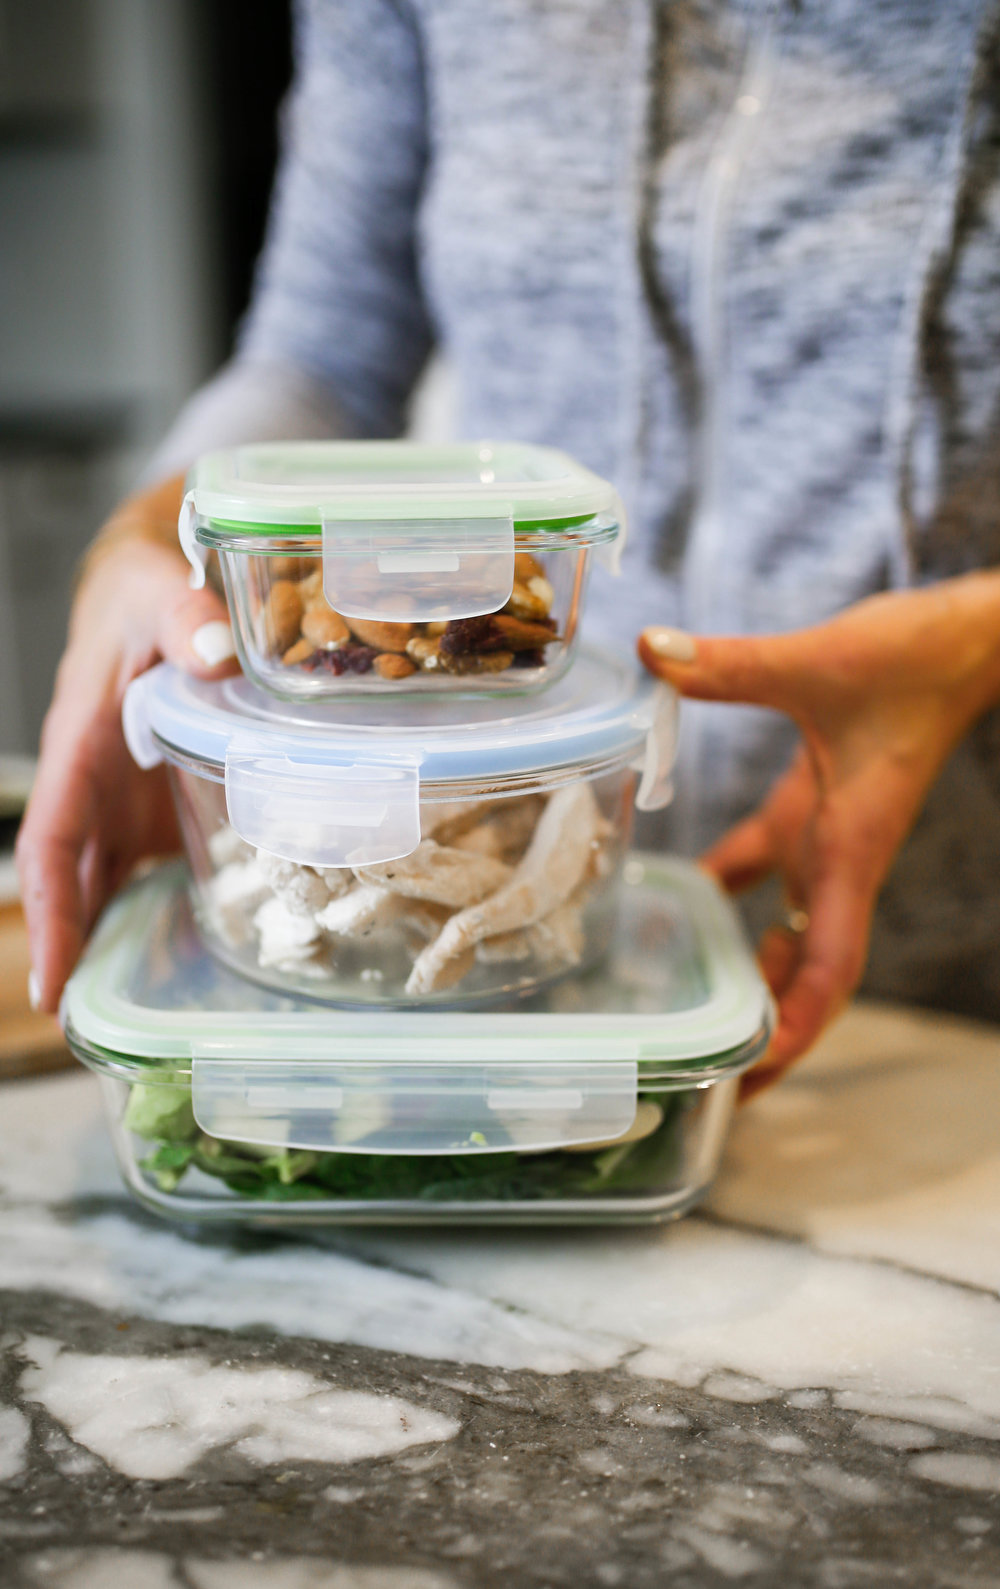 healthy food stacked in glass storage containers